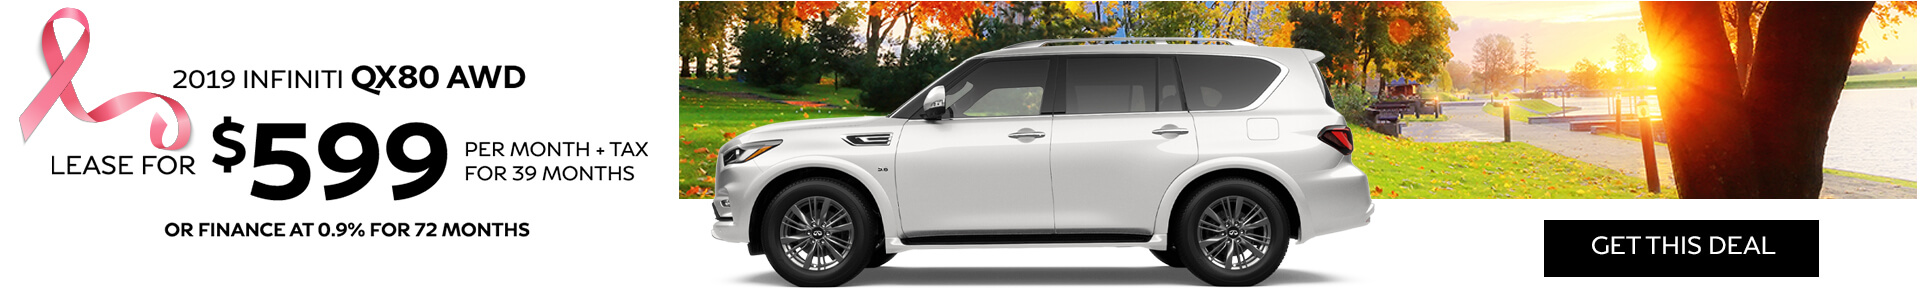 QX80 - Lease for $599